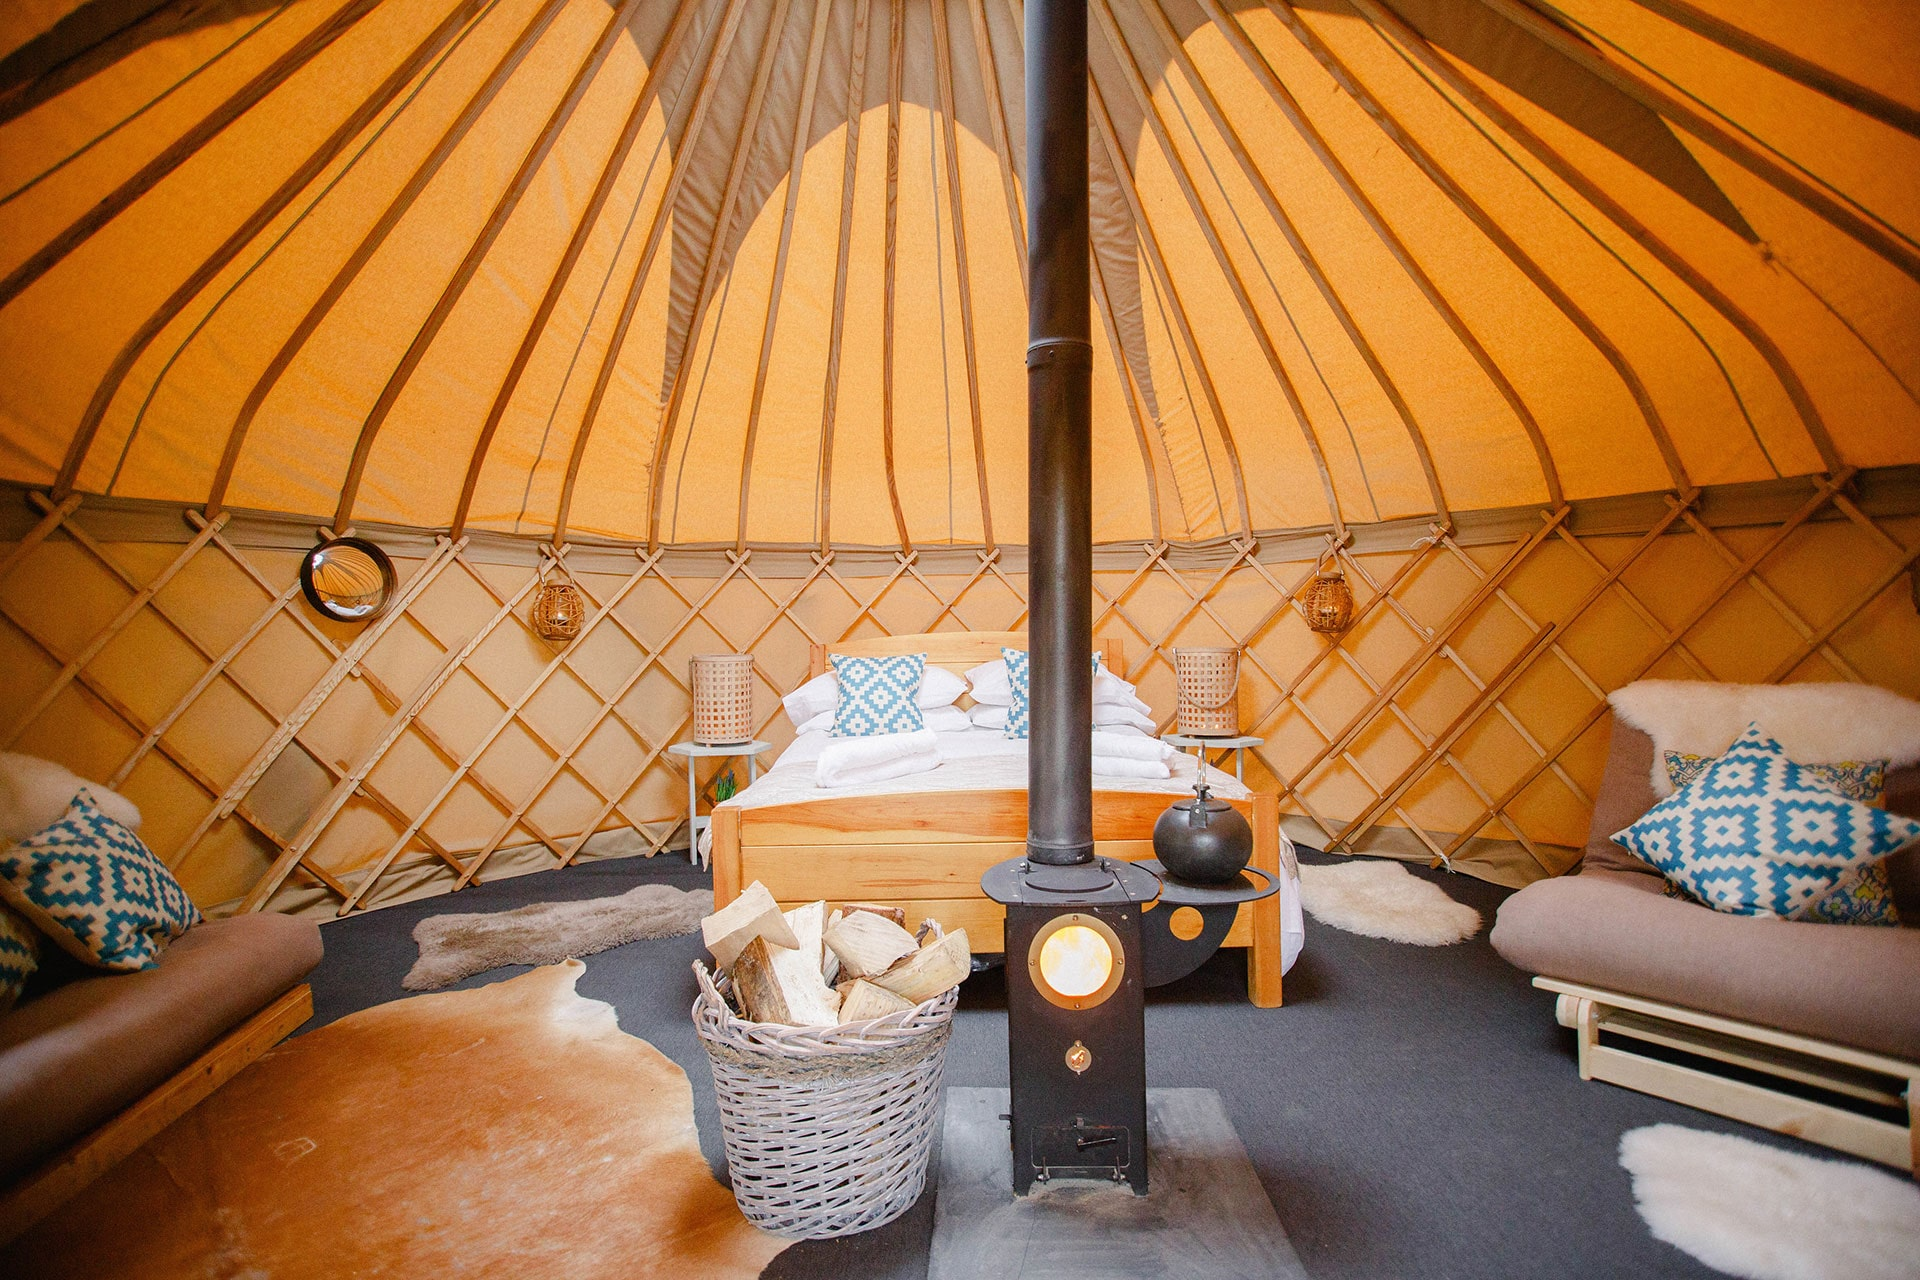 inside-of-cosy-yurt-with-bed-log-burner-and-sofas-yurtshire-fountains-yurts-ripon